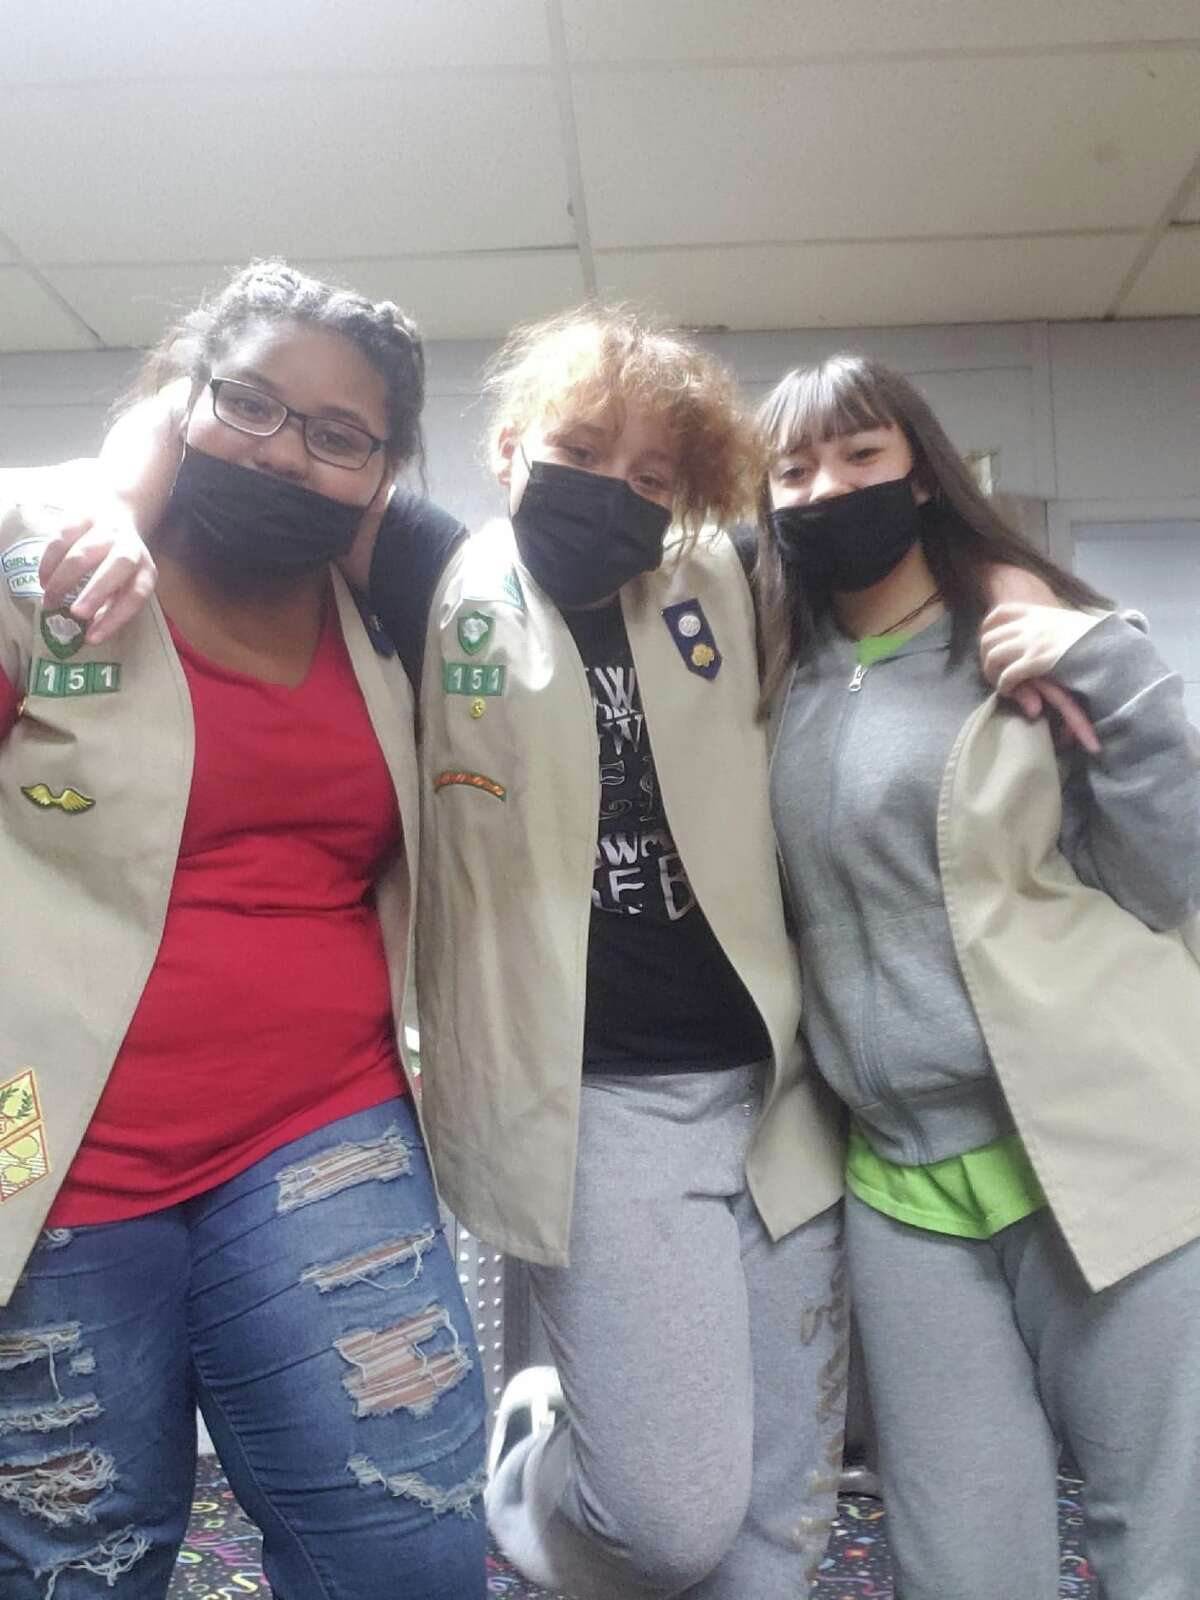 Cookie season is here and local Girl Scouts will be selling boxes until March 7. Pictured (L-R): Sapphire, Diamond and Marissa of Girl Scout Troop 6151